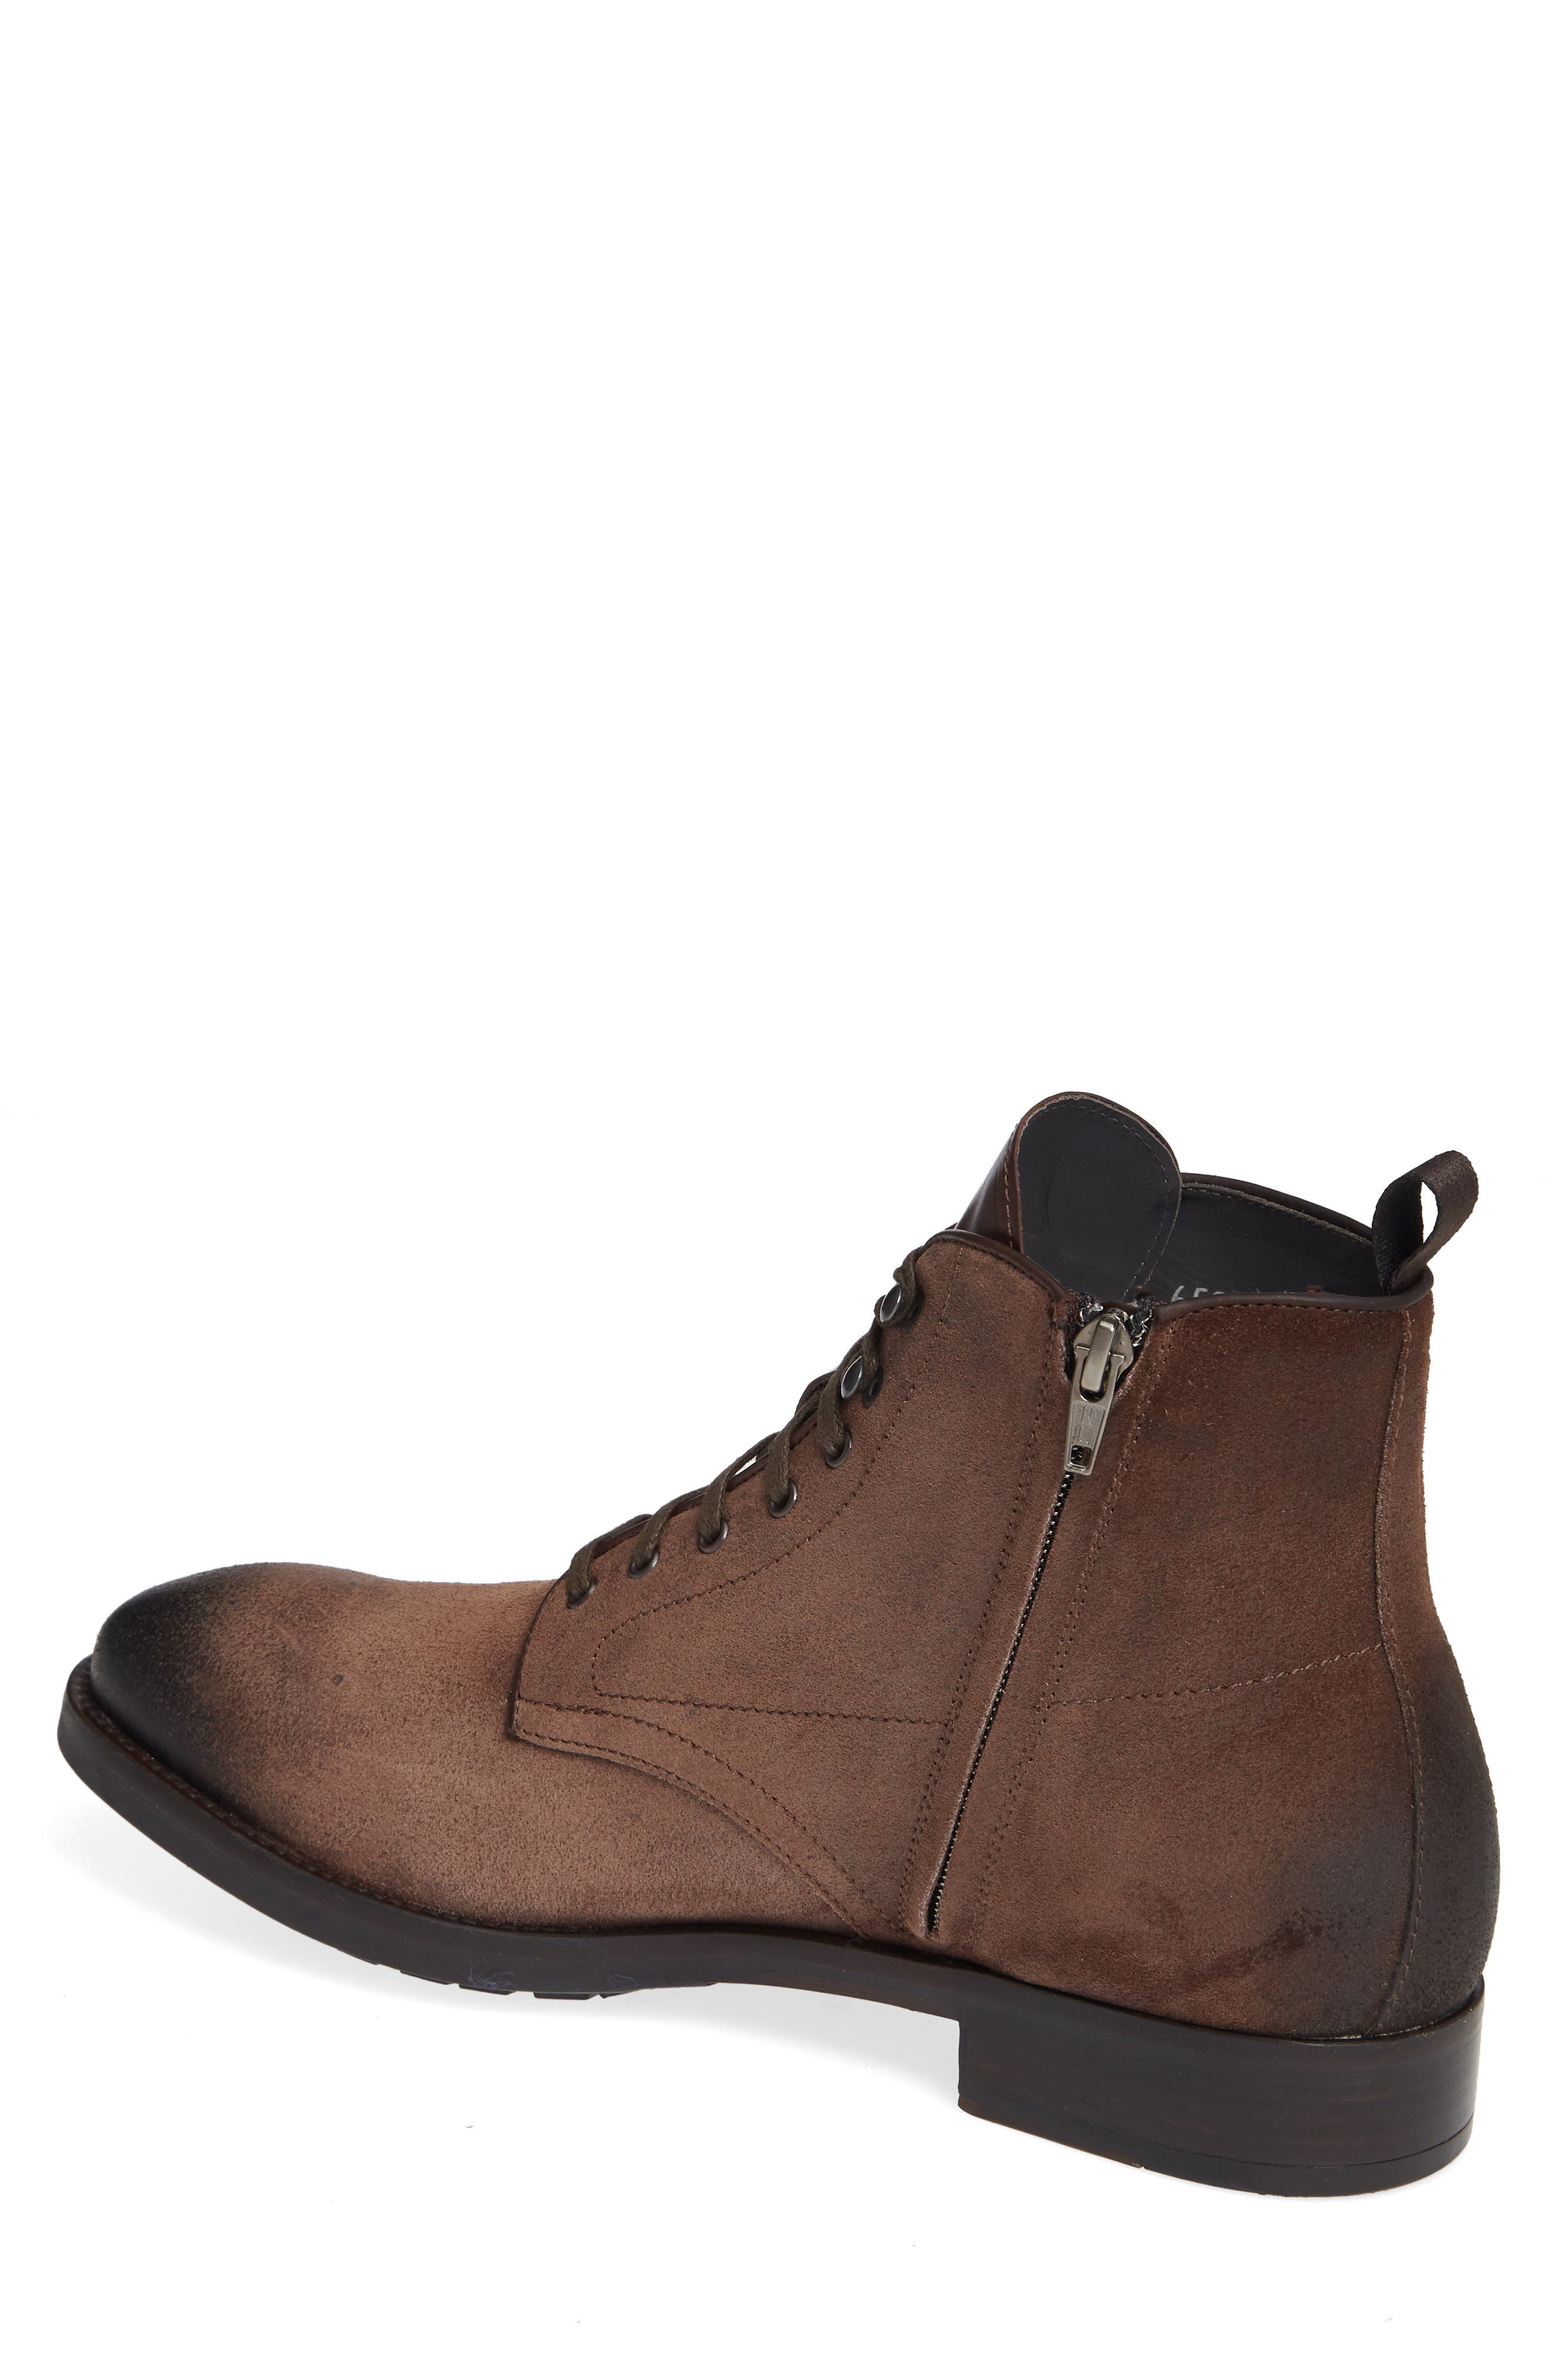 Athens Plain Toe Boot,                             Alternate thumbnail 2, color,                             TMORO SUEDE/ LEATHER